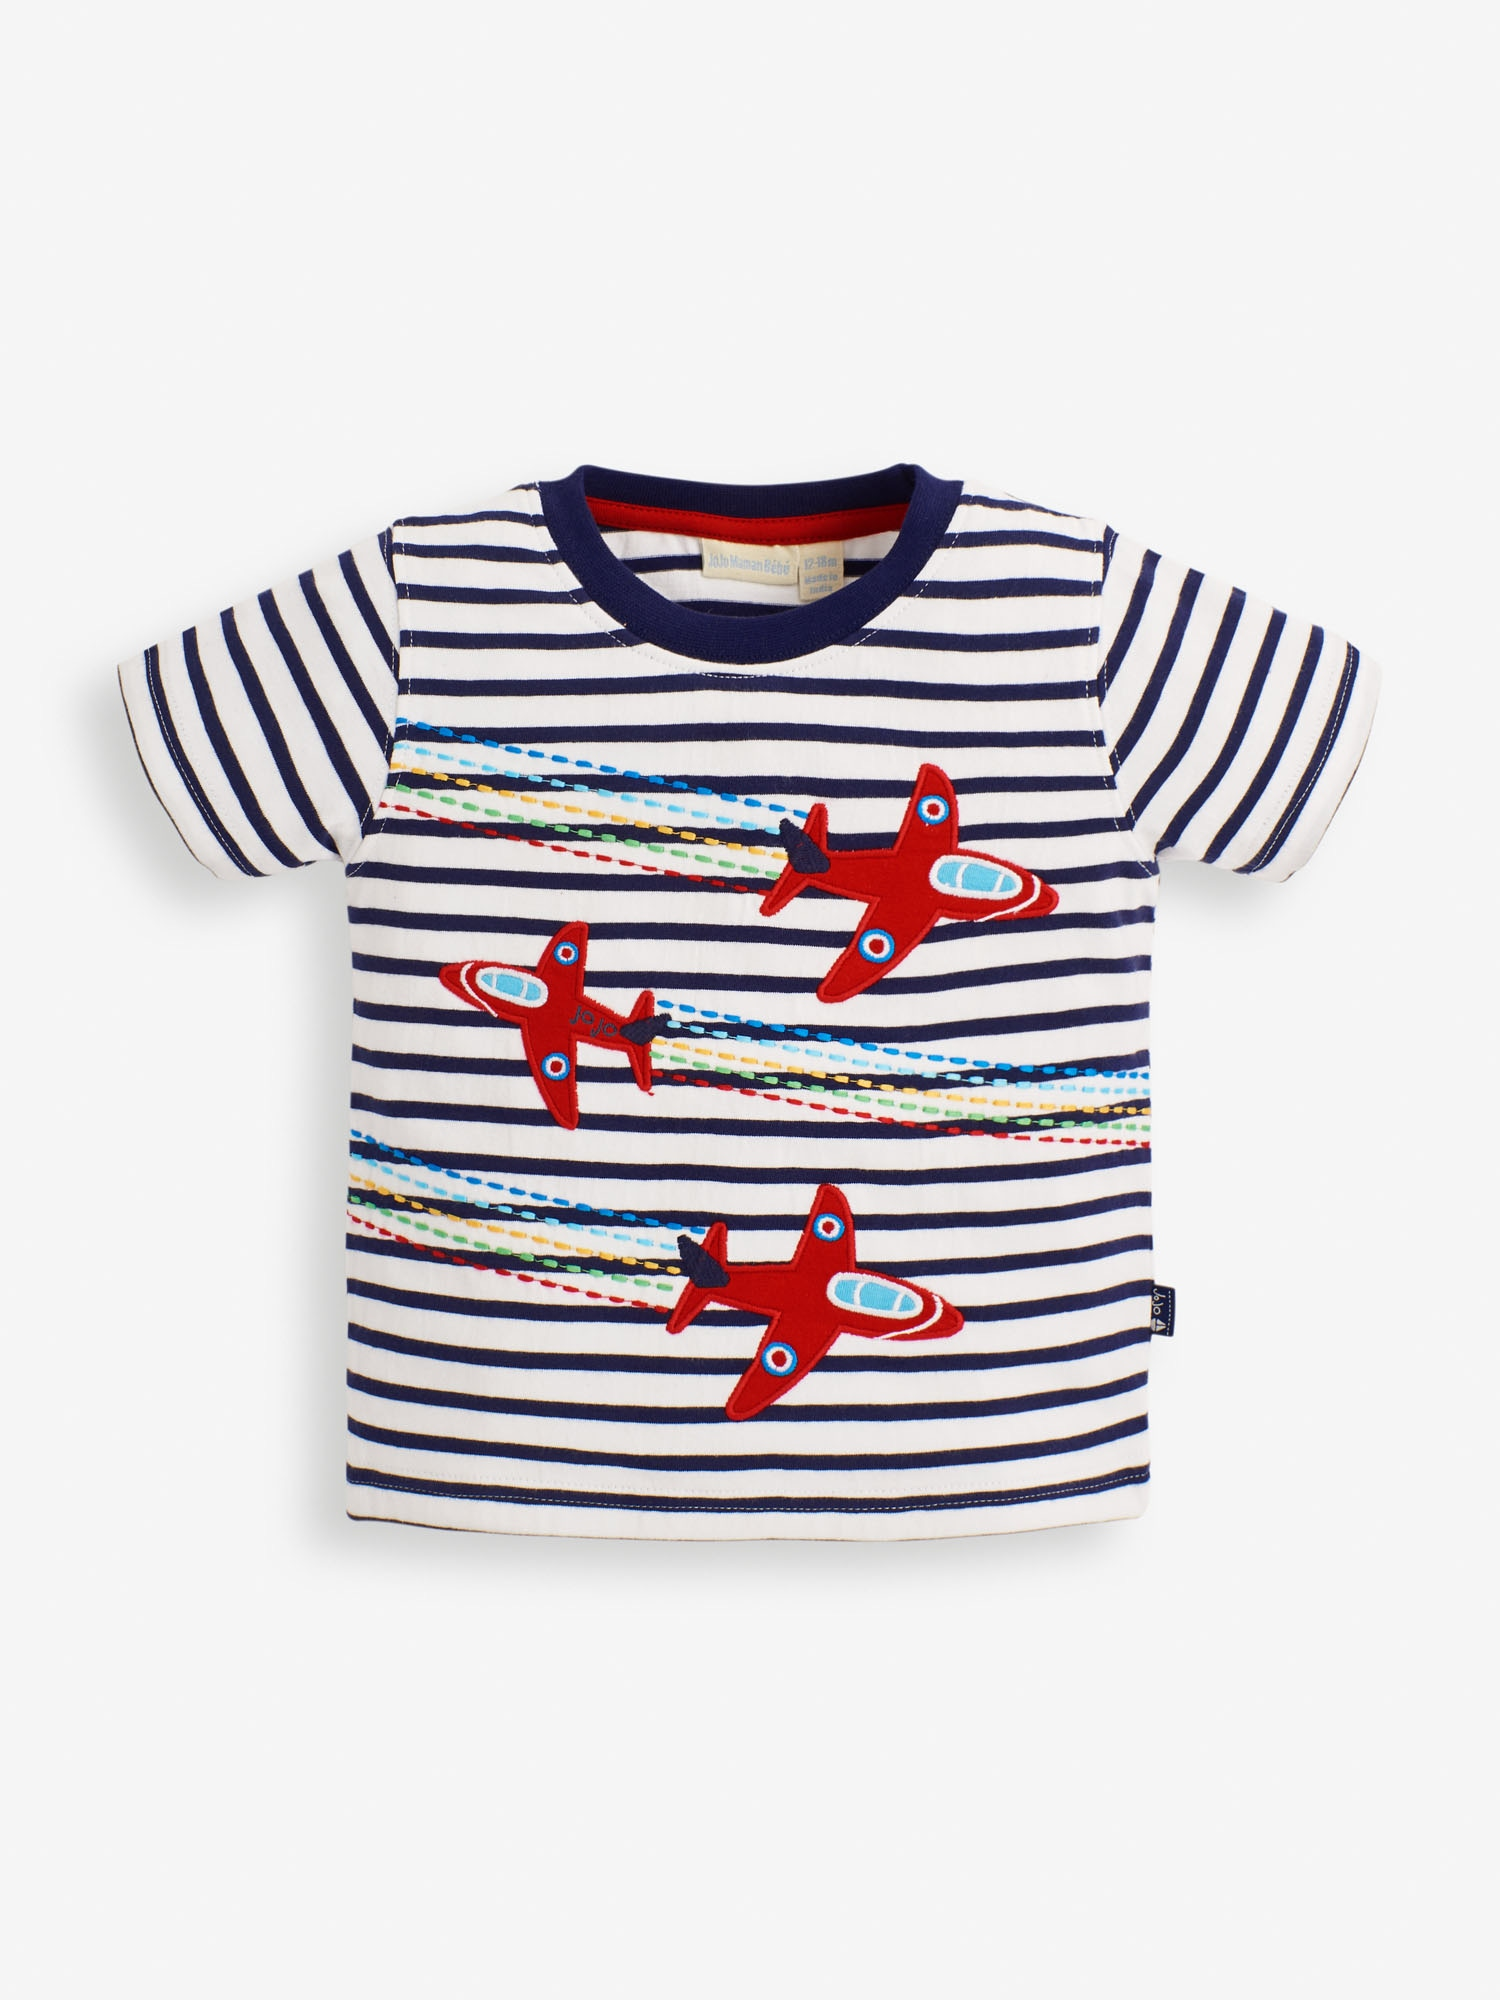 Kids' White Navy Stripe Red Arrows Applique T-Shirt